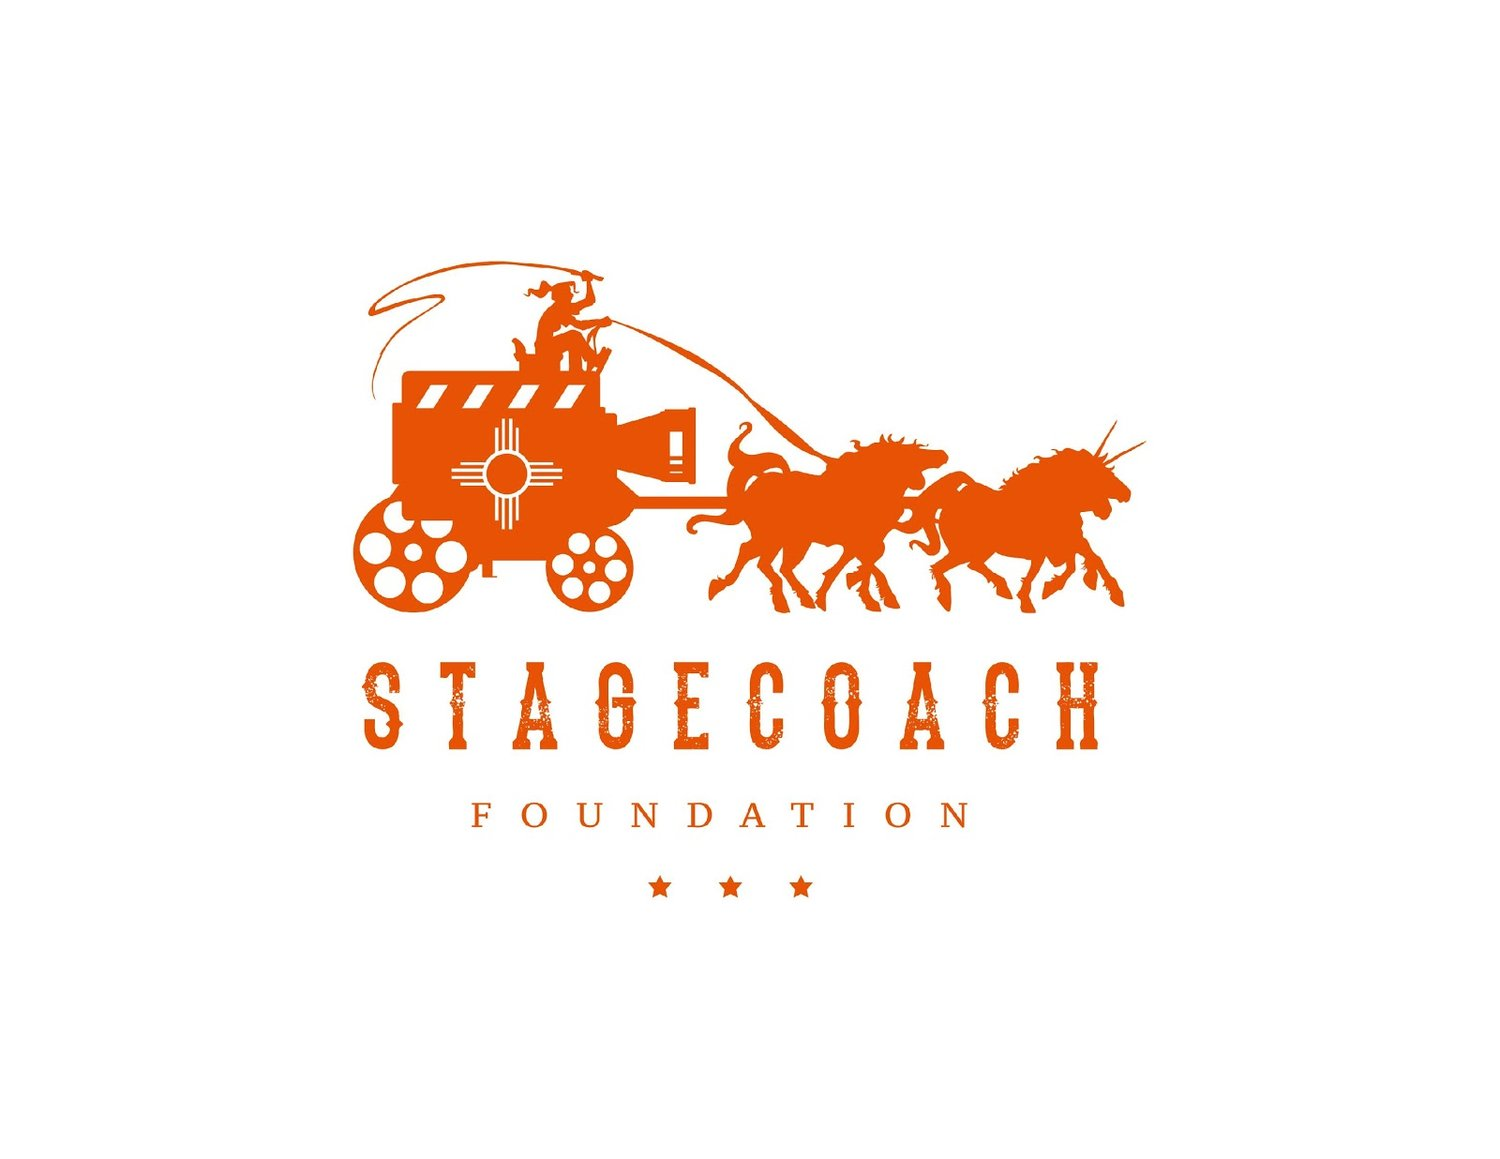 STAGECOACH FOUNDATION